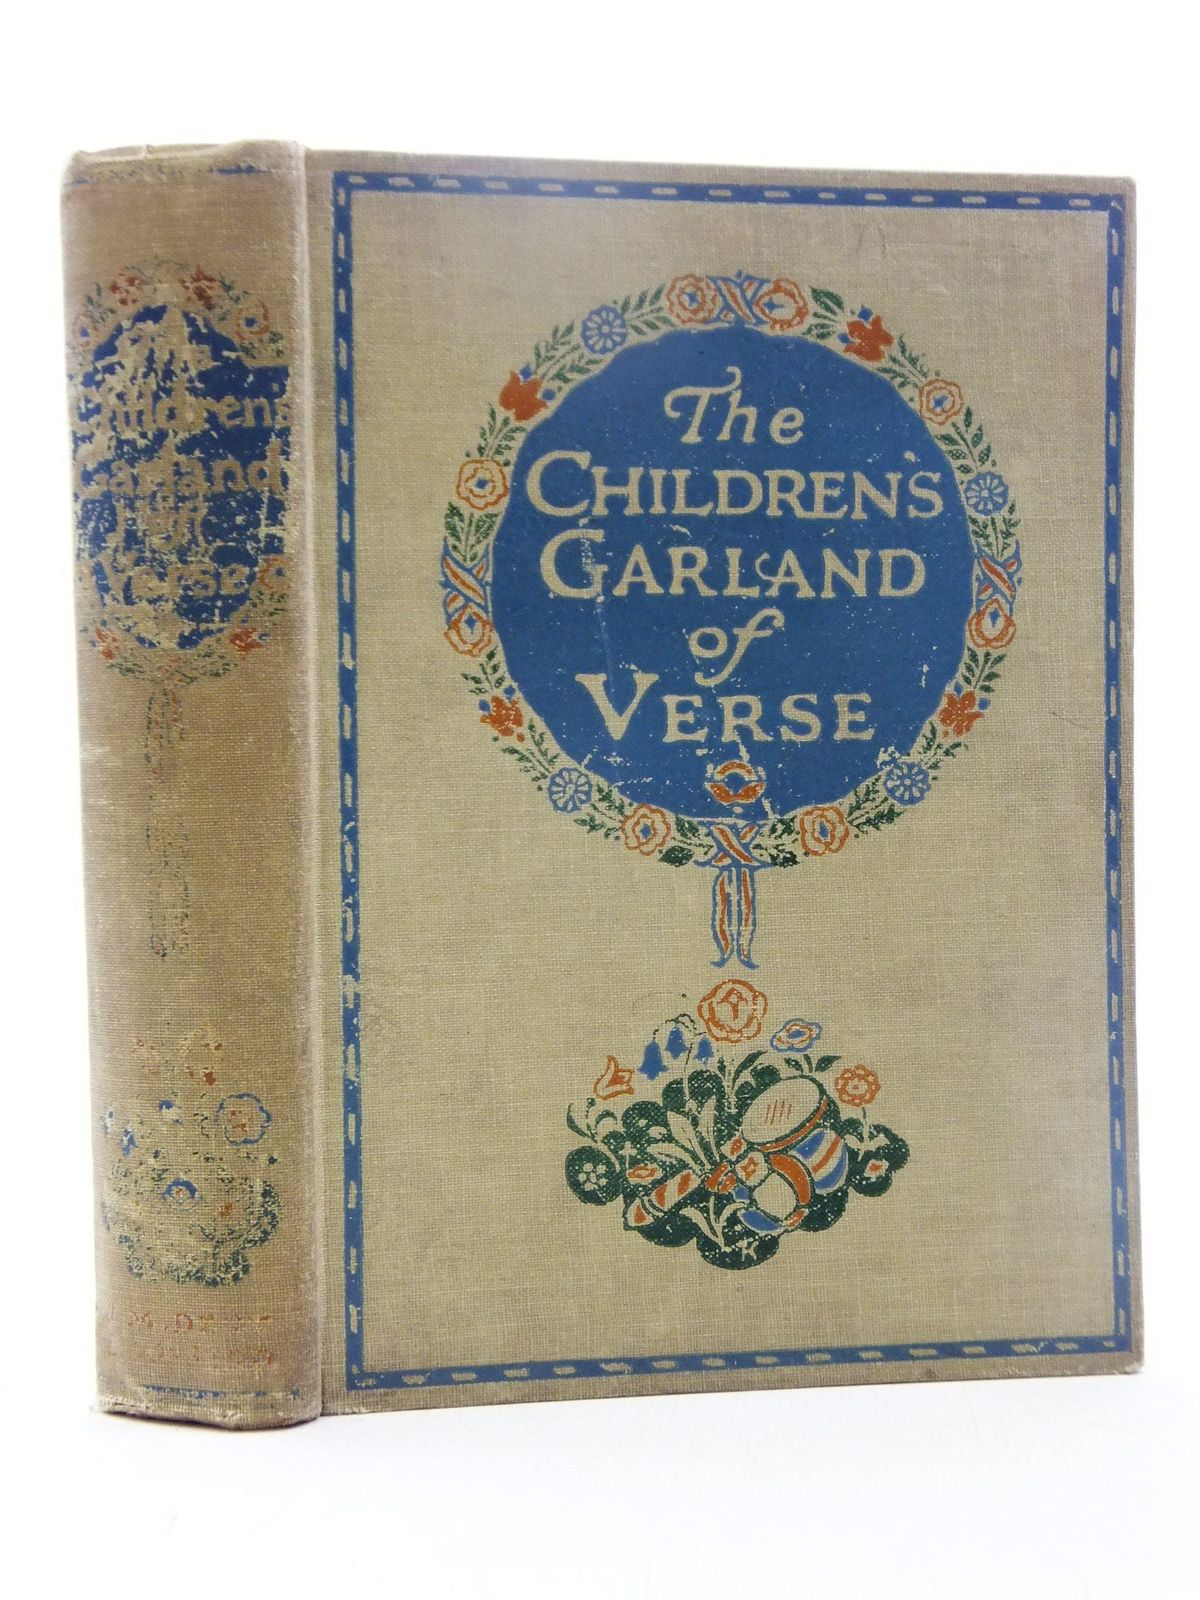 Photo of THE CHILDREN'S GARLAND OF VERSE written by Rhys, Grace Longfellow, Henry Wadsworth Scott, Sir Walter Lear, Edward et al, illustrated by Robinson, Charles published by J.M. Dent & Sons Ltd. (STOCK CODE: 2117994)  for sale by Stella & Rose's Books